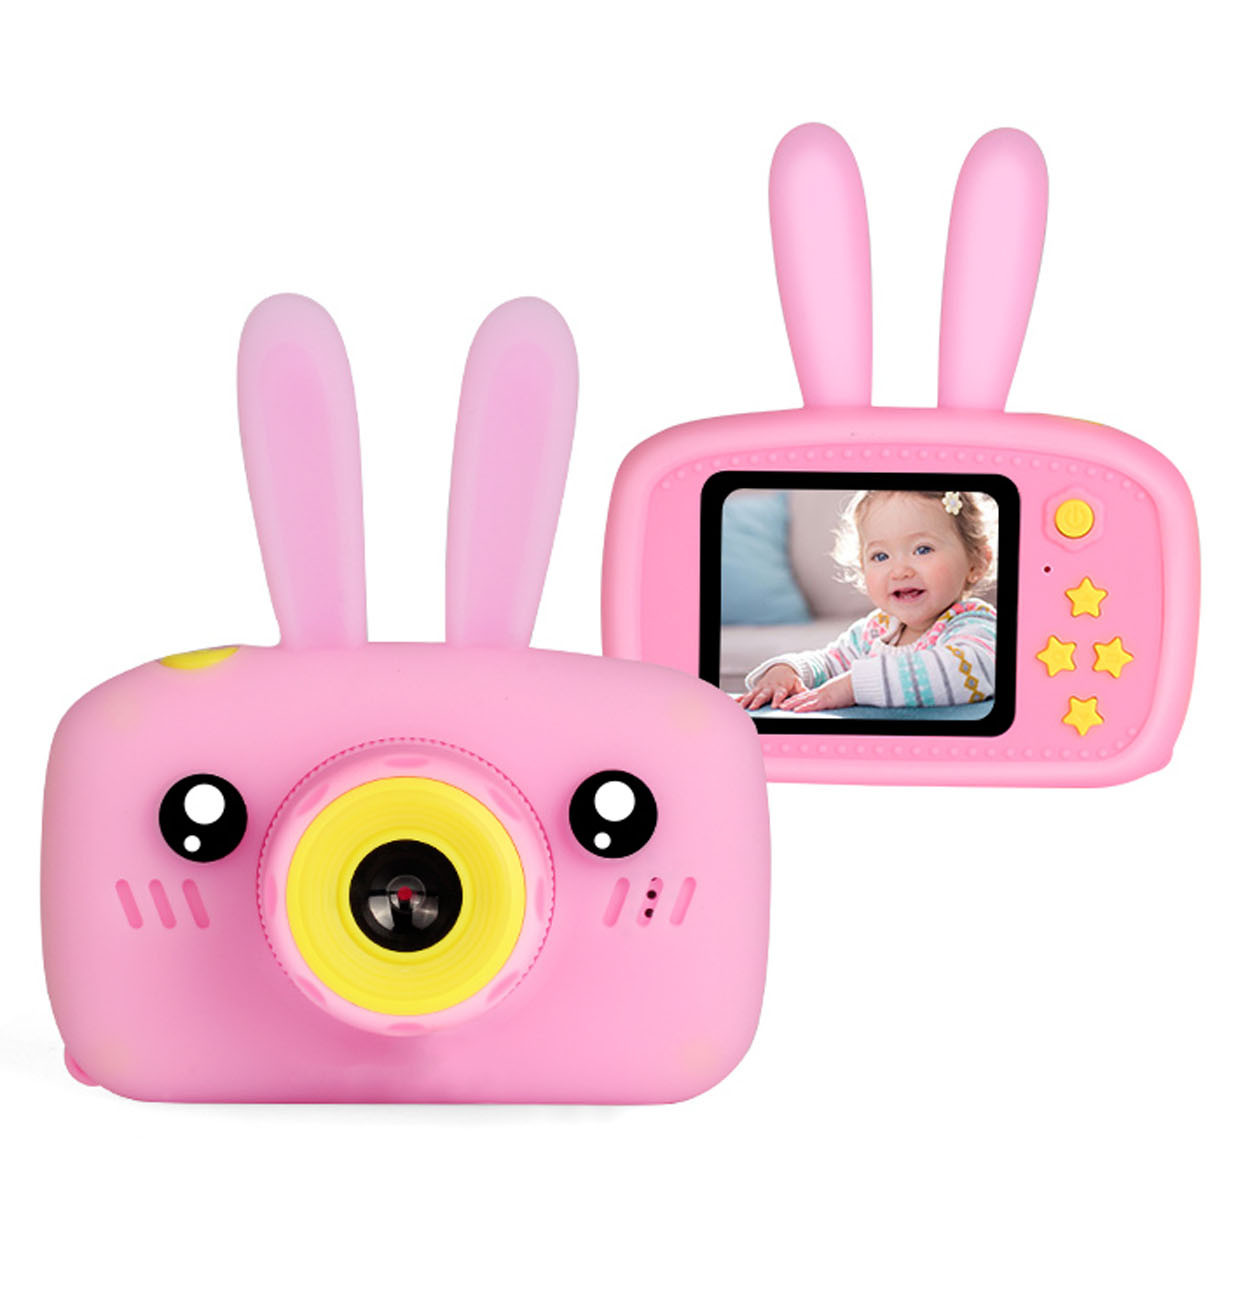 Cartoon Digital Camera Baby Toys Children Creative Educational Toy Photography Training Accessories Birthday Baby Gifts #LR2